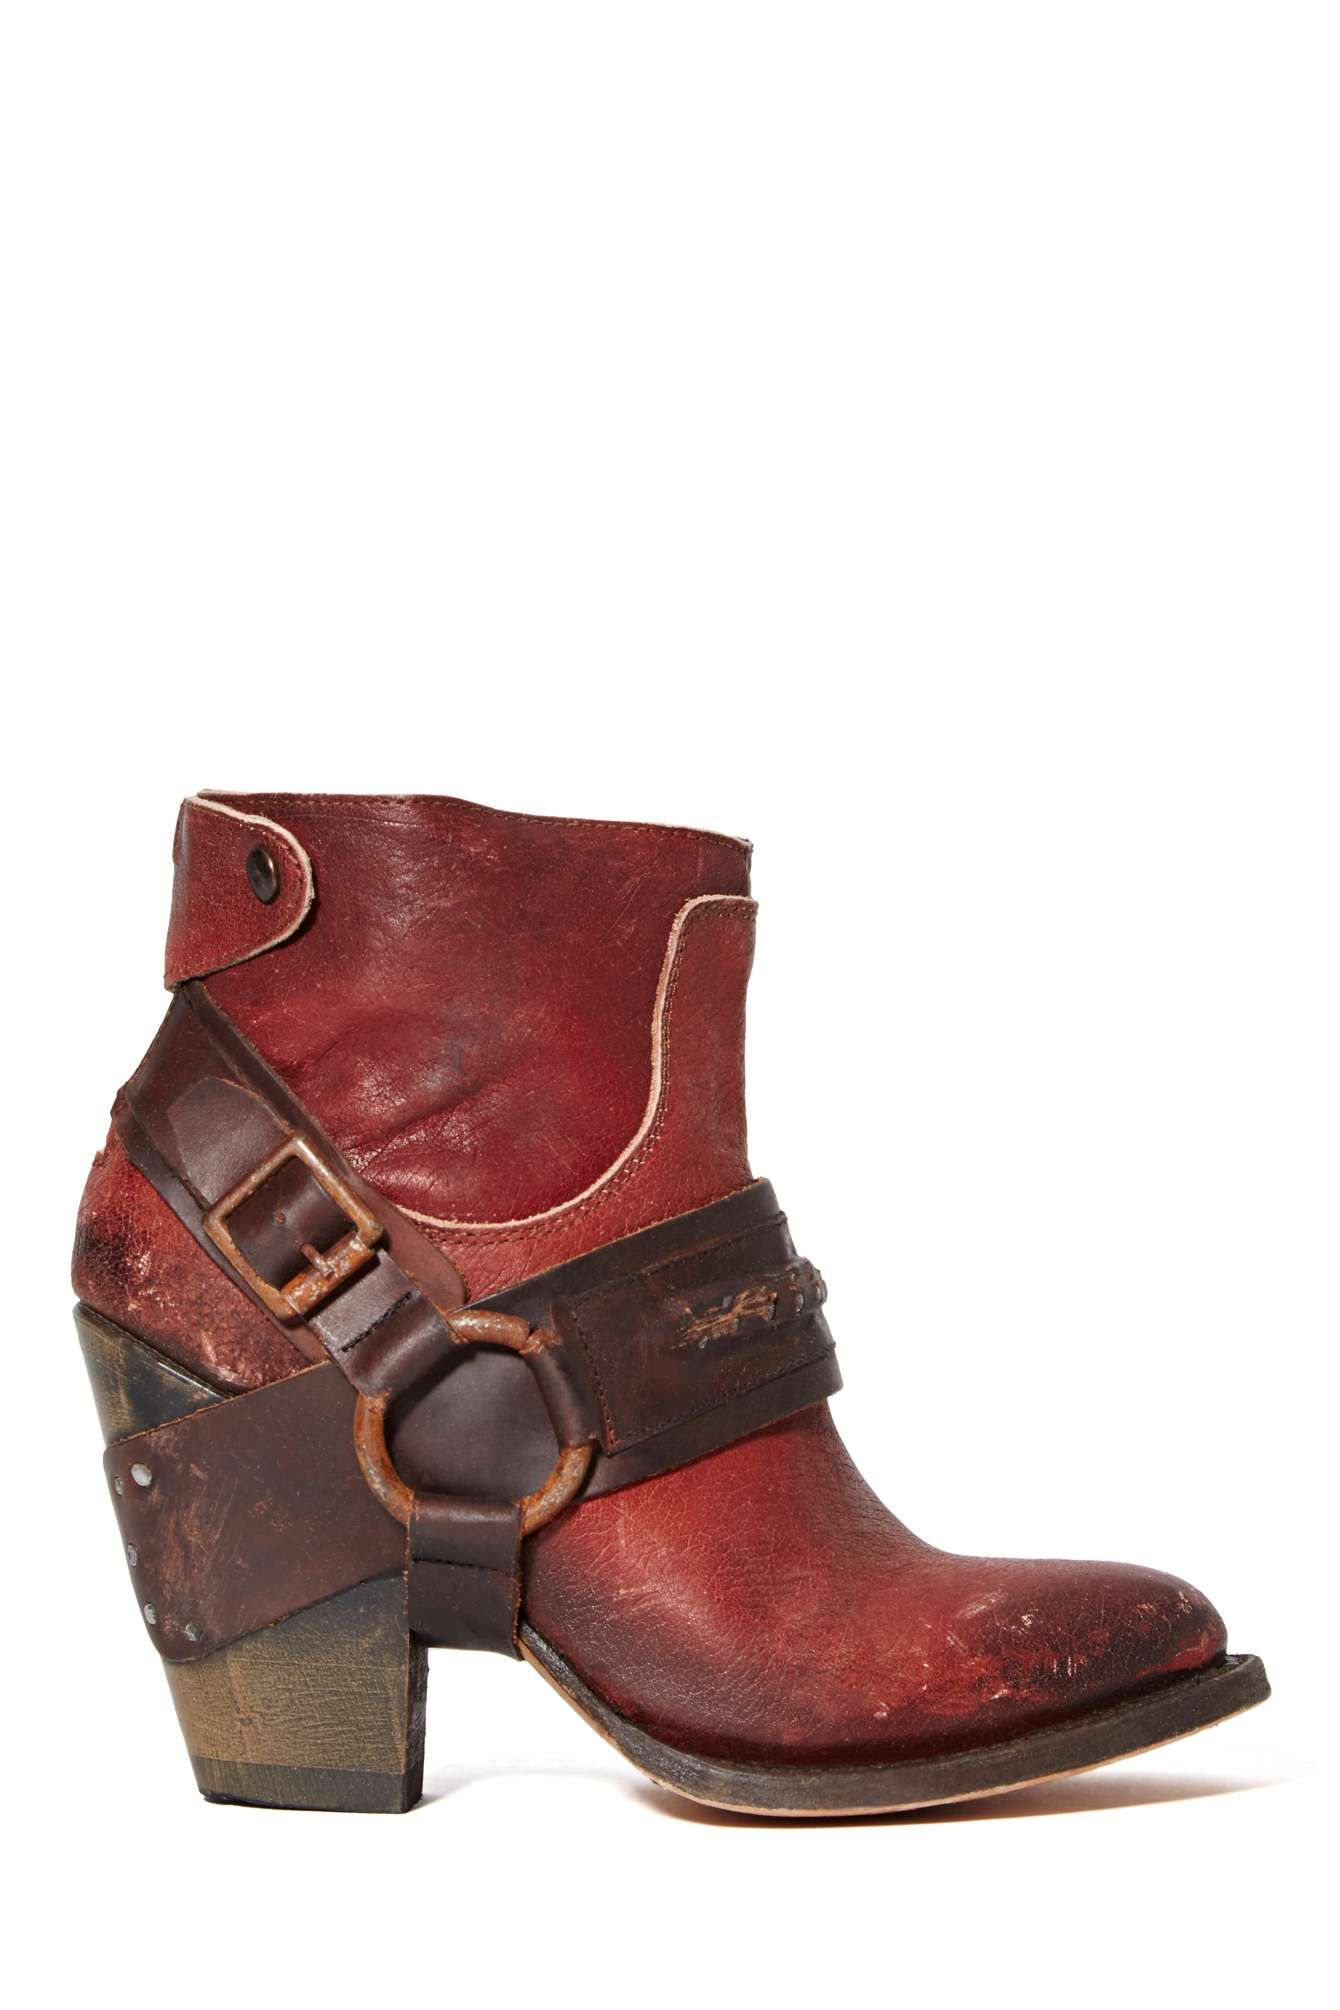 Казаки, country boots,  western style boots